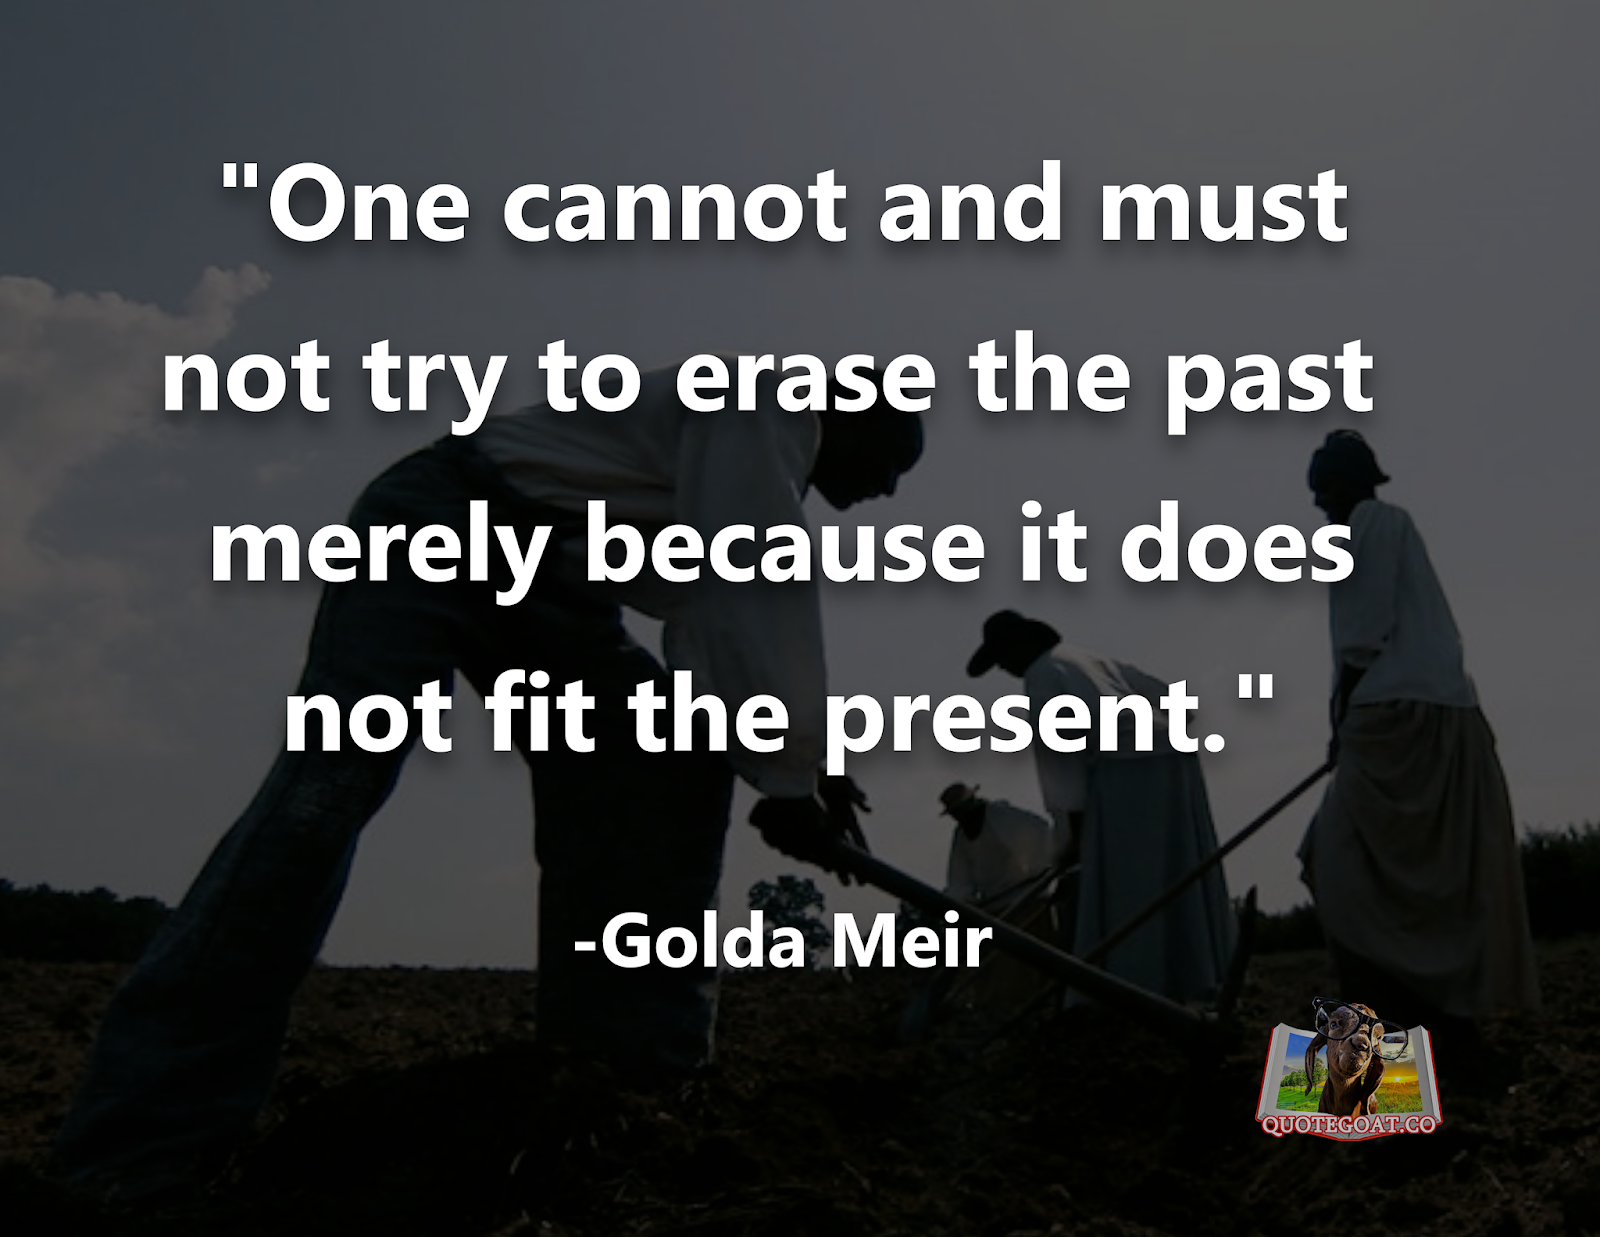 quote goat daily quotes golda meir erasing the past